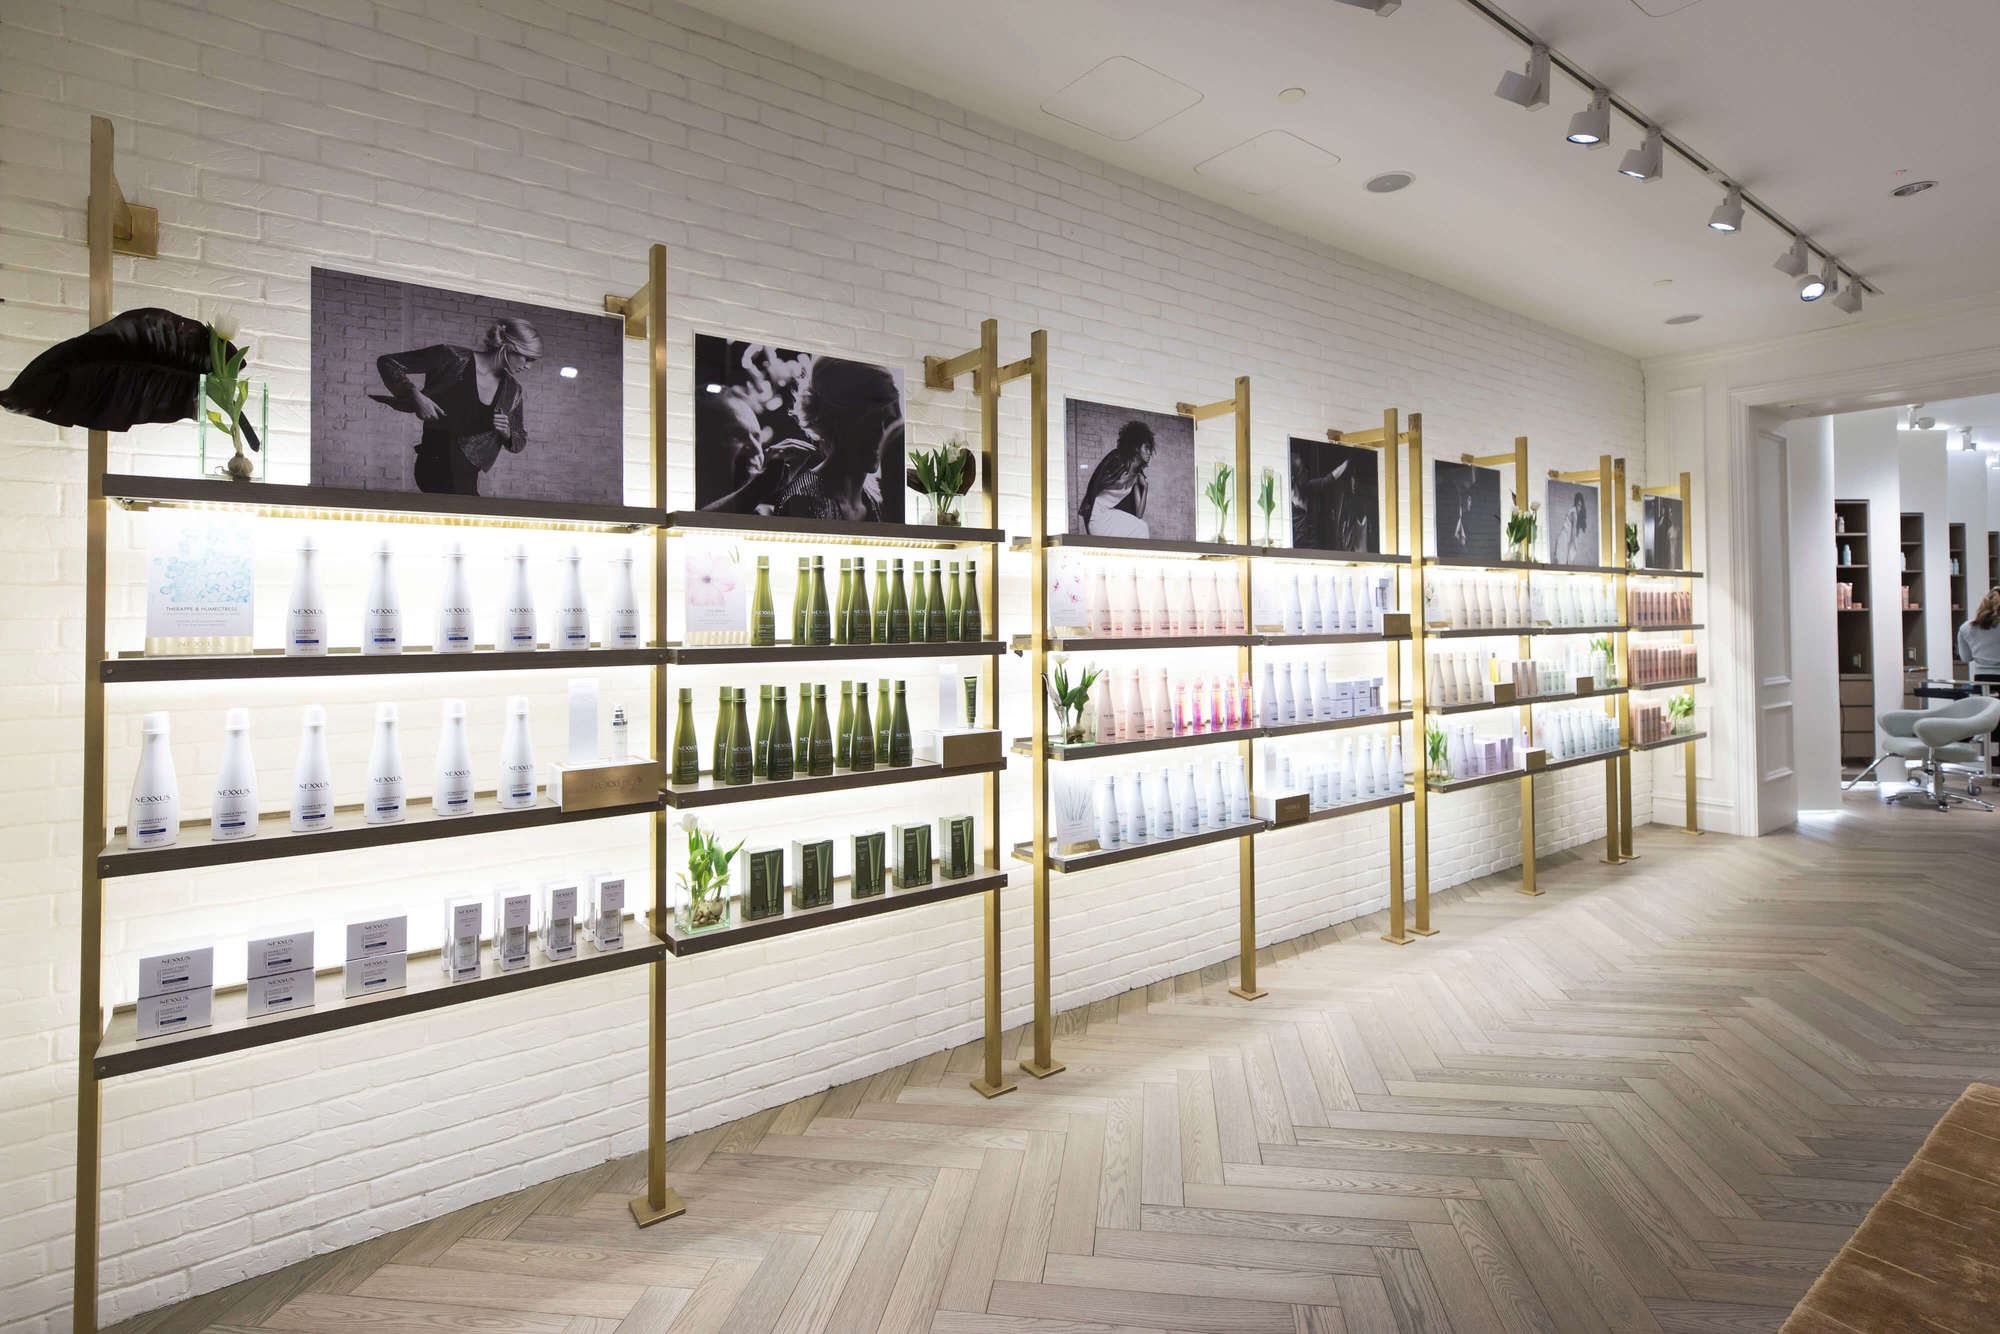 tribeca salon in NYC: products